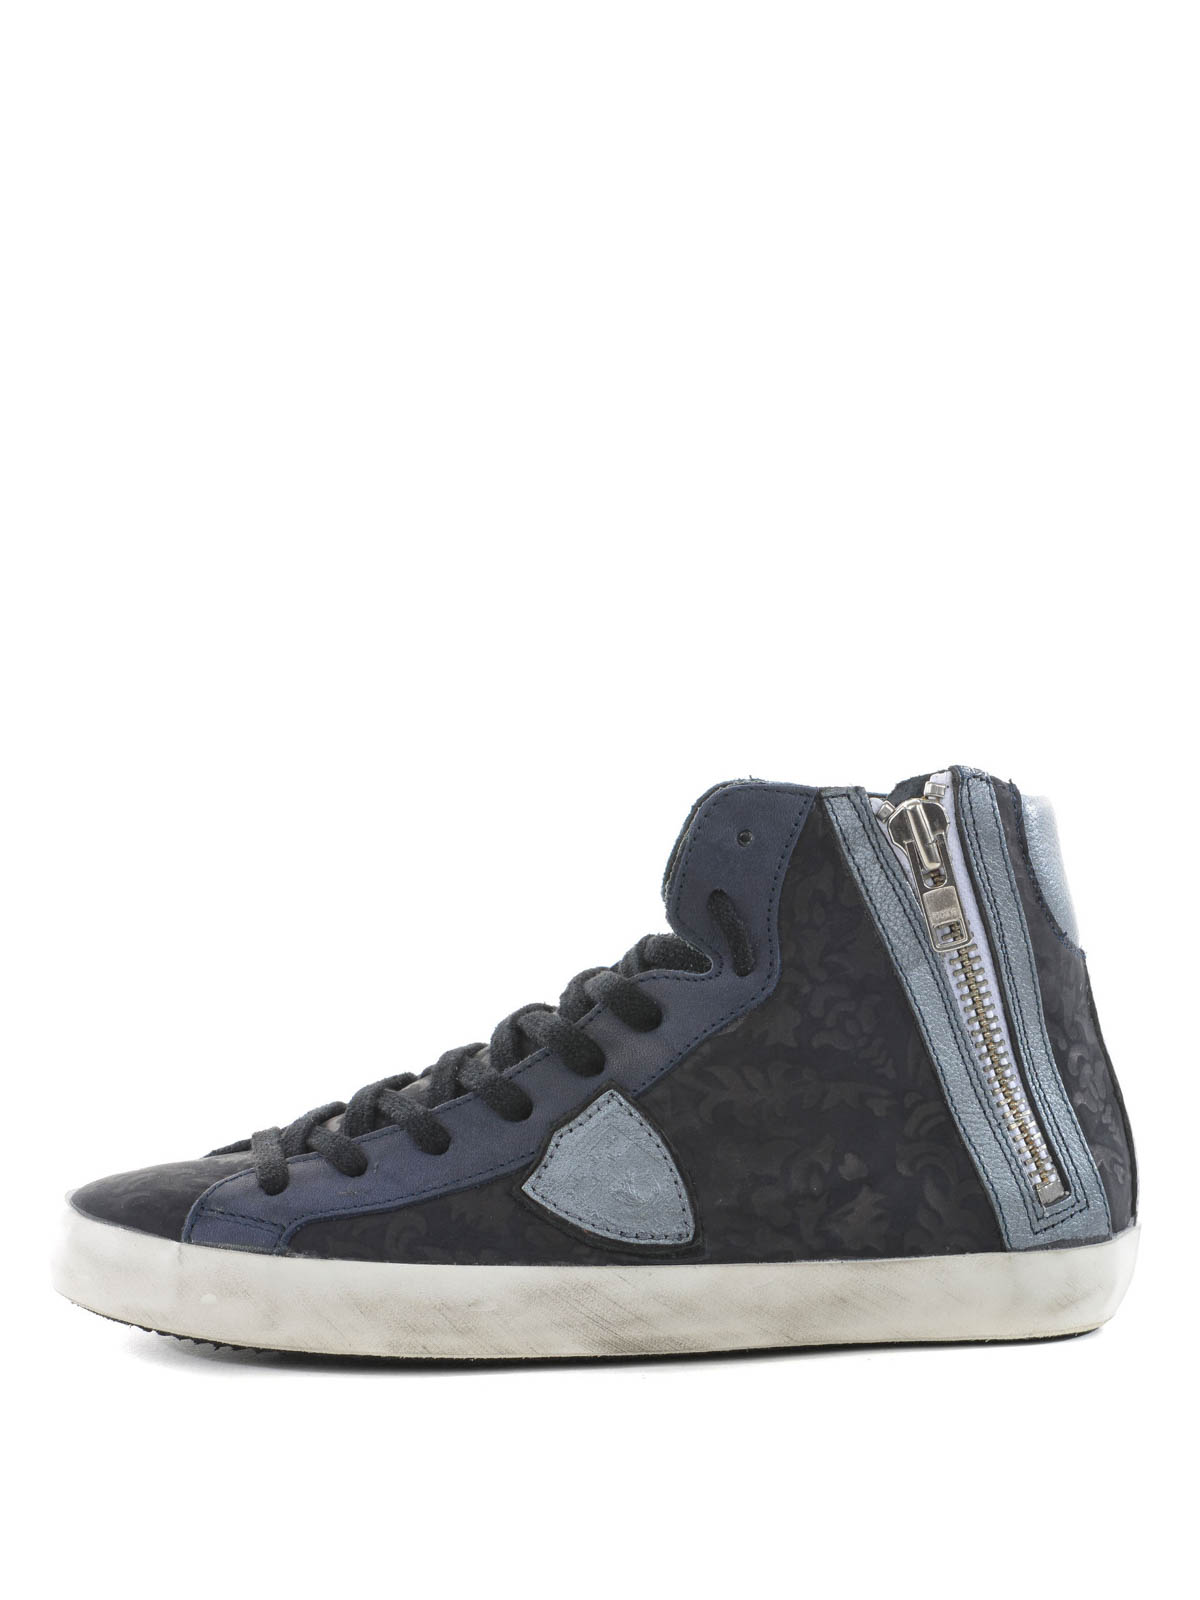 high top leather sneakers by philippe model trainers ikrix. Black Bedroom Furniture Sets. Home Design Ideas